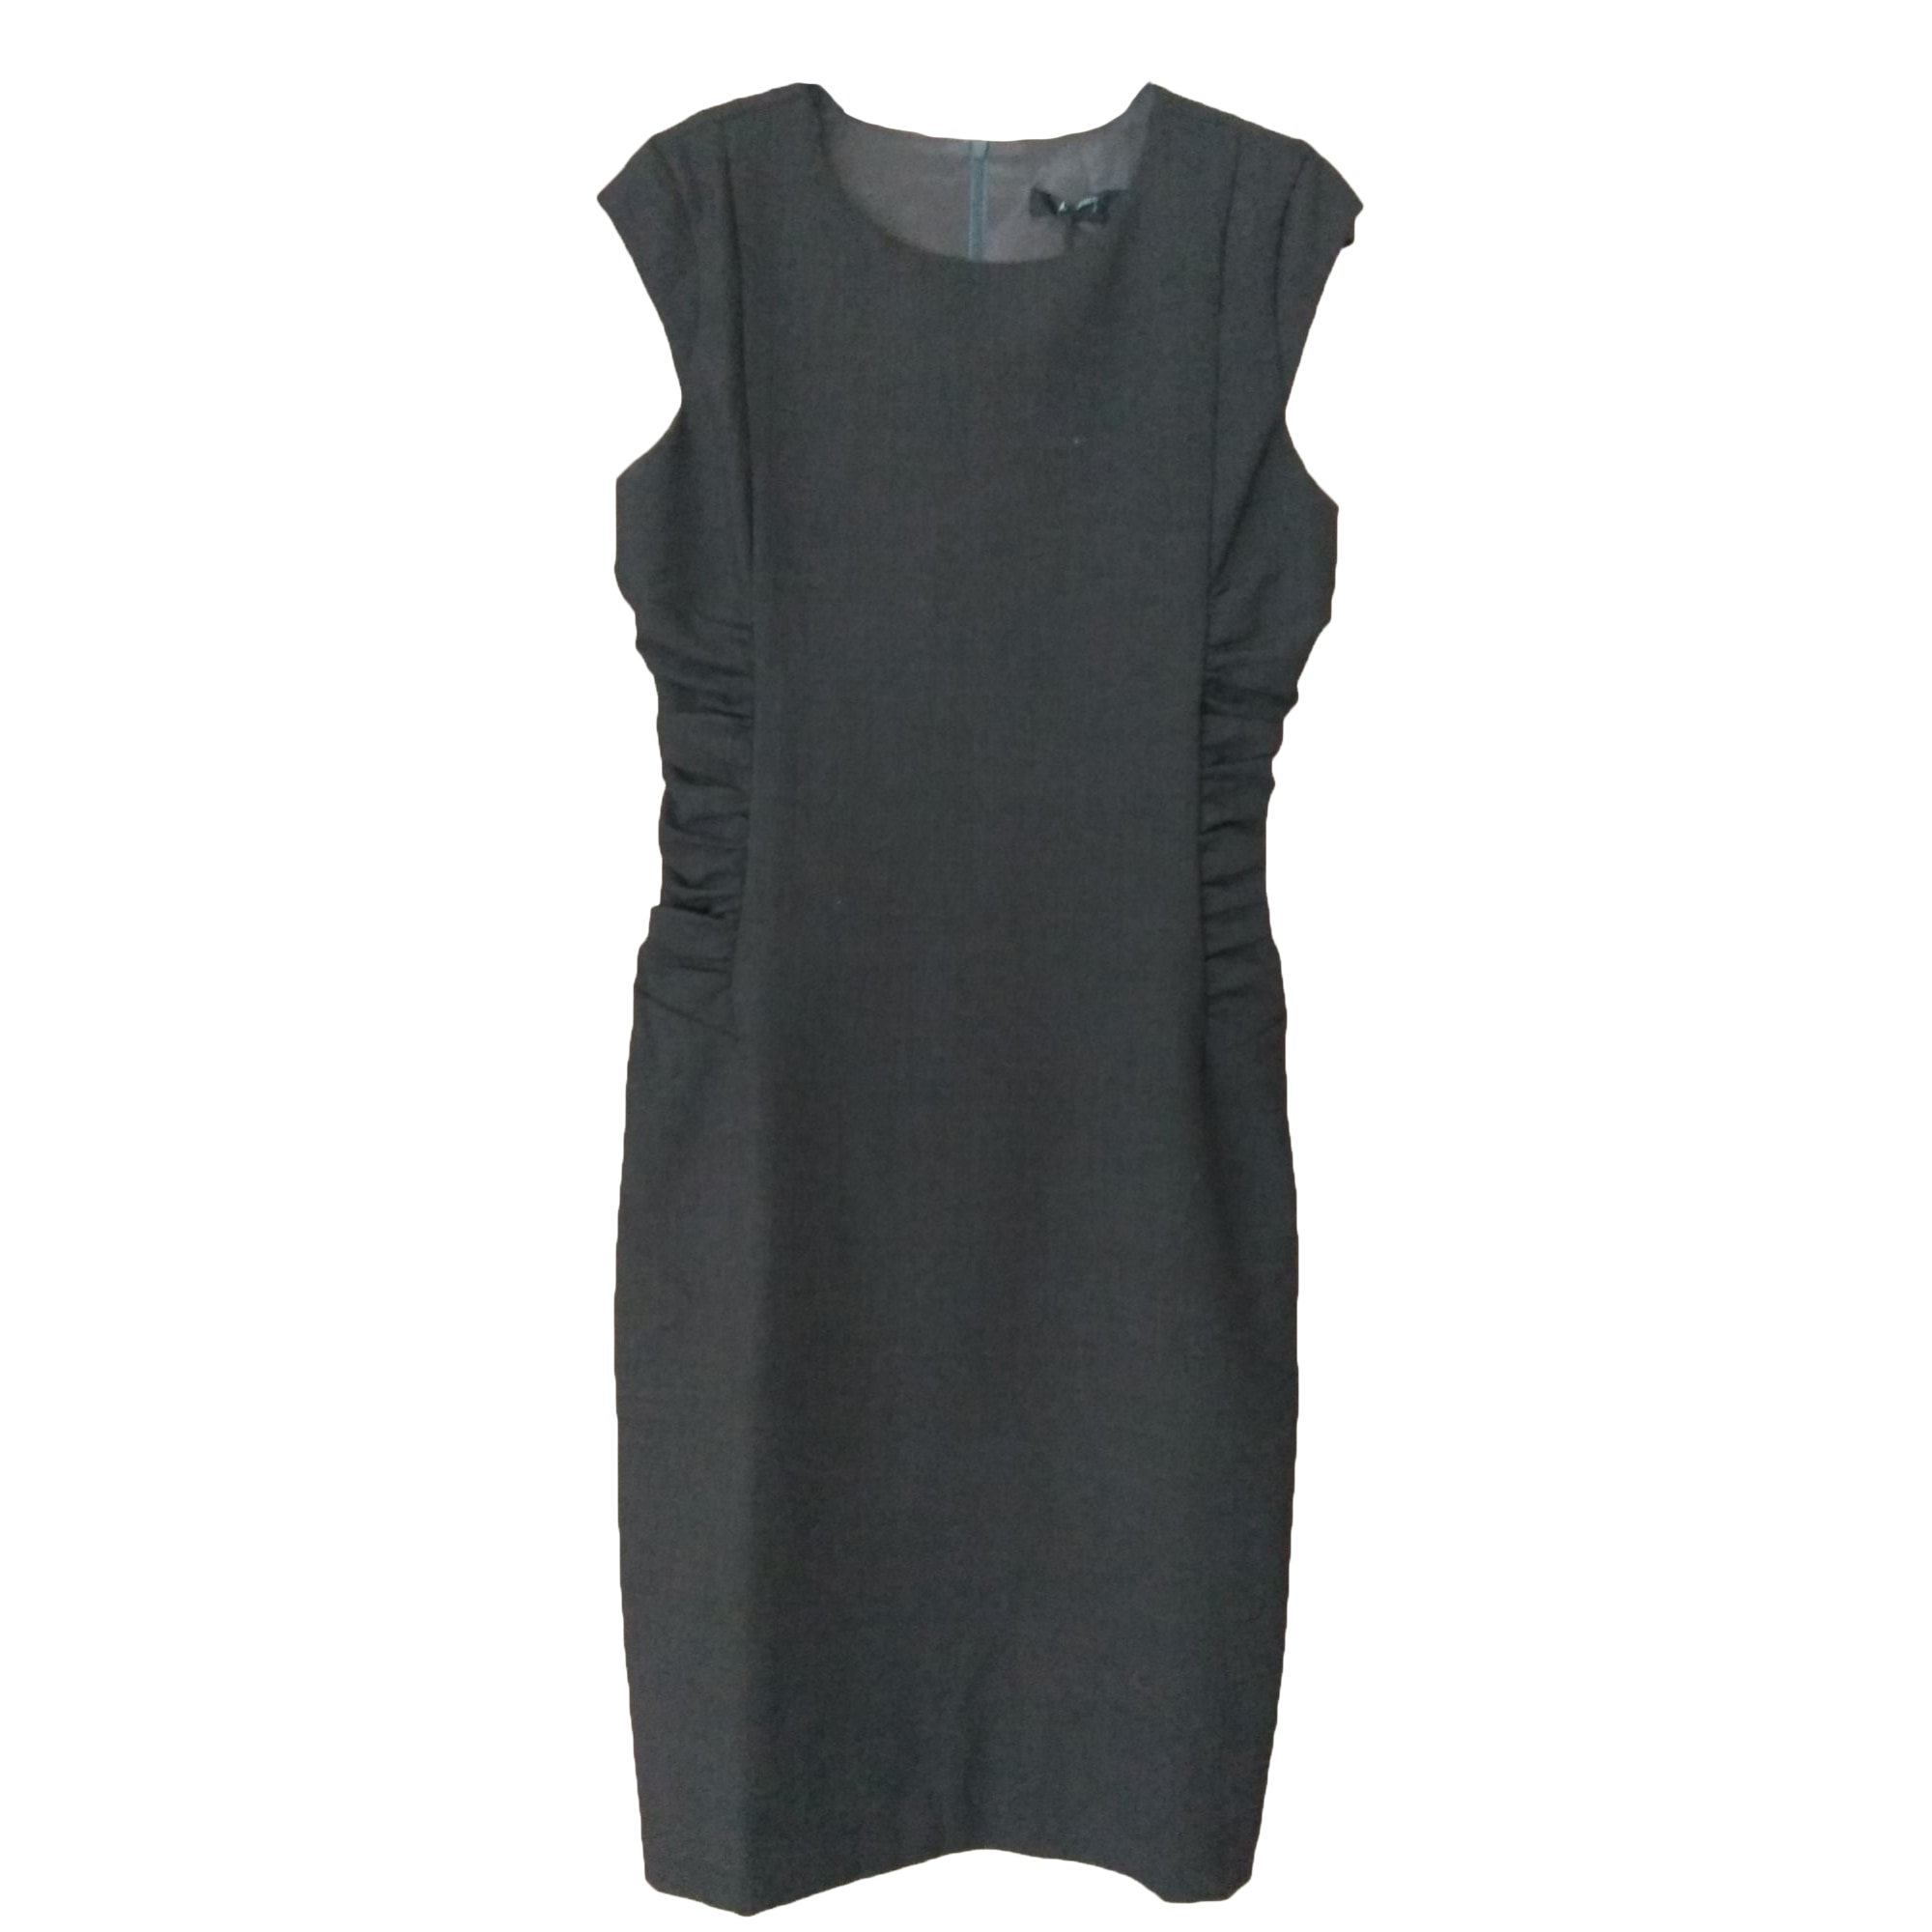 Robe mi-longue GUESS Gris, anthracite